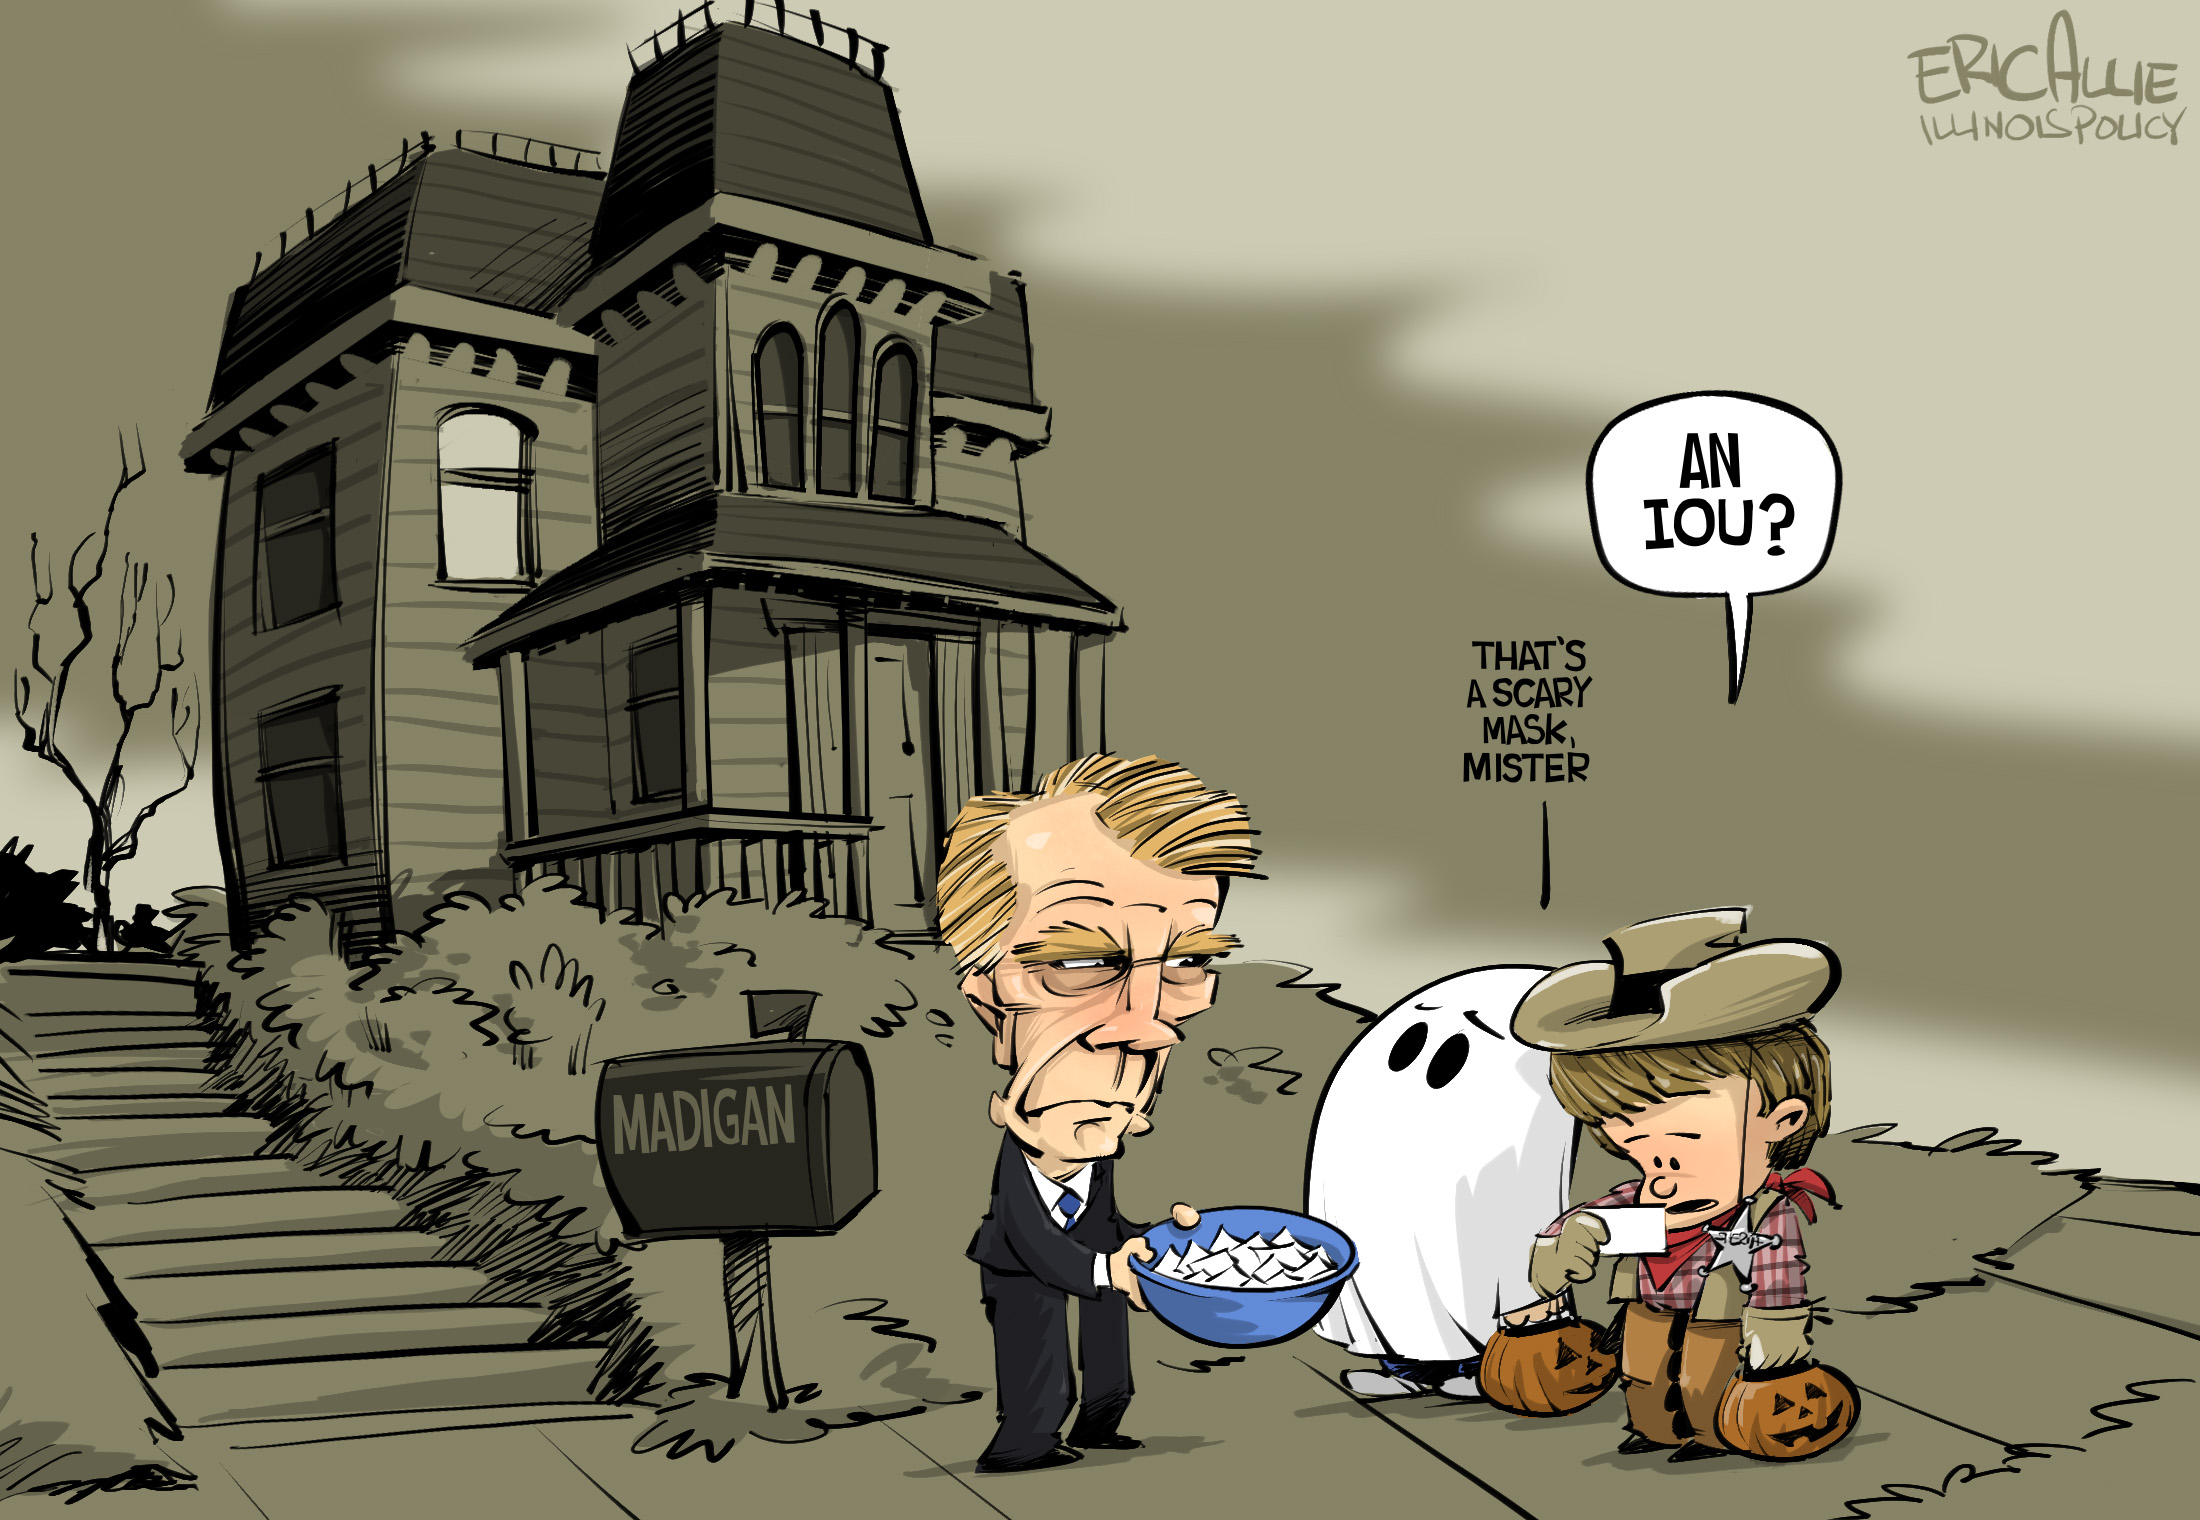 Madigan: Trick or Treat